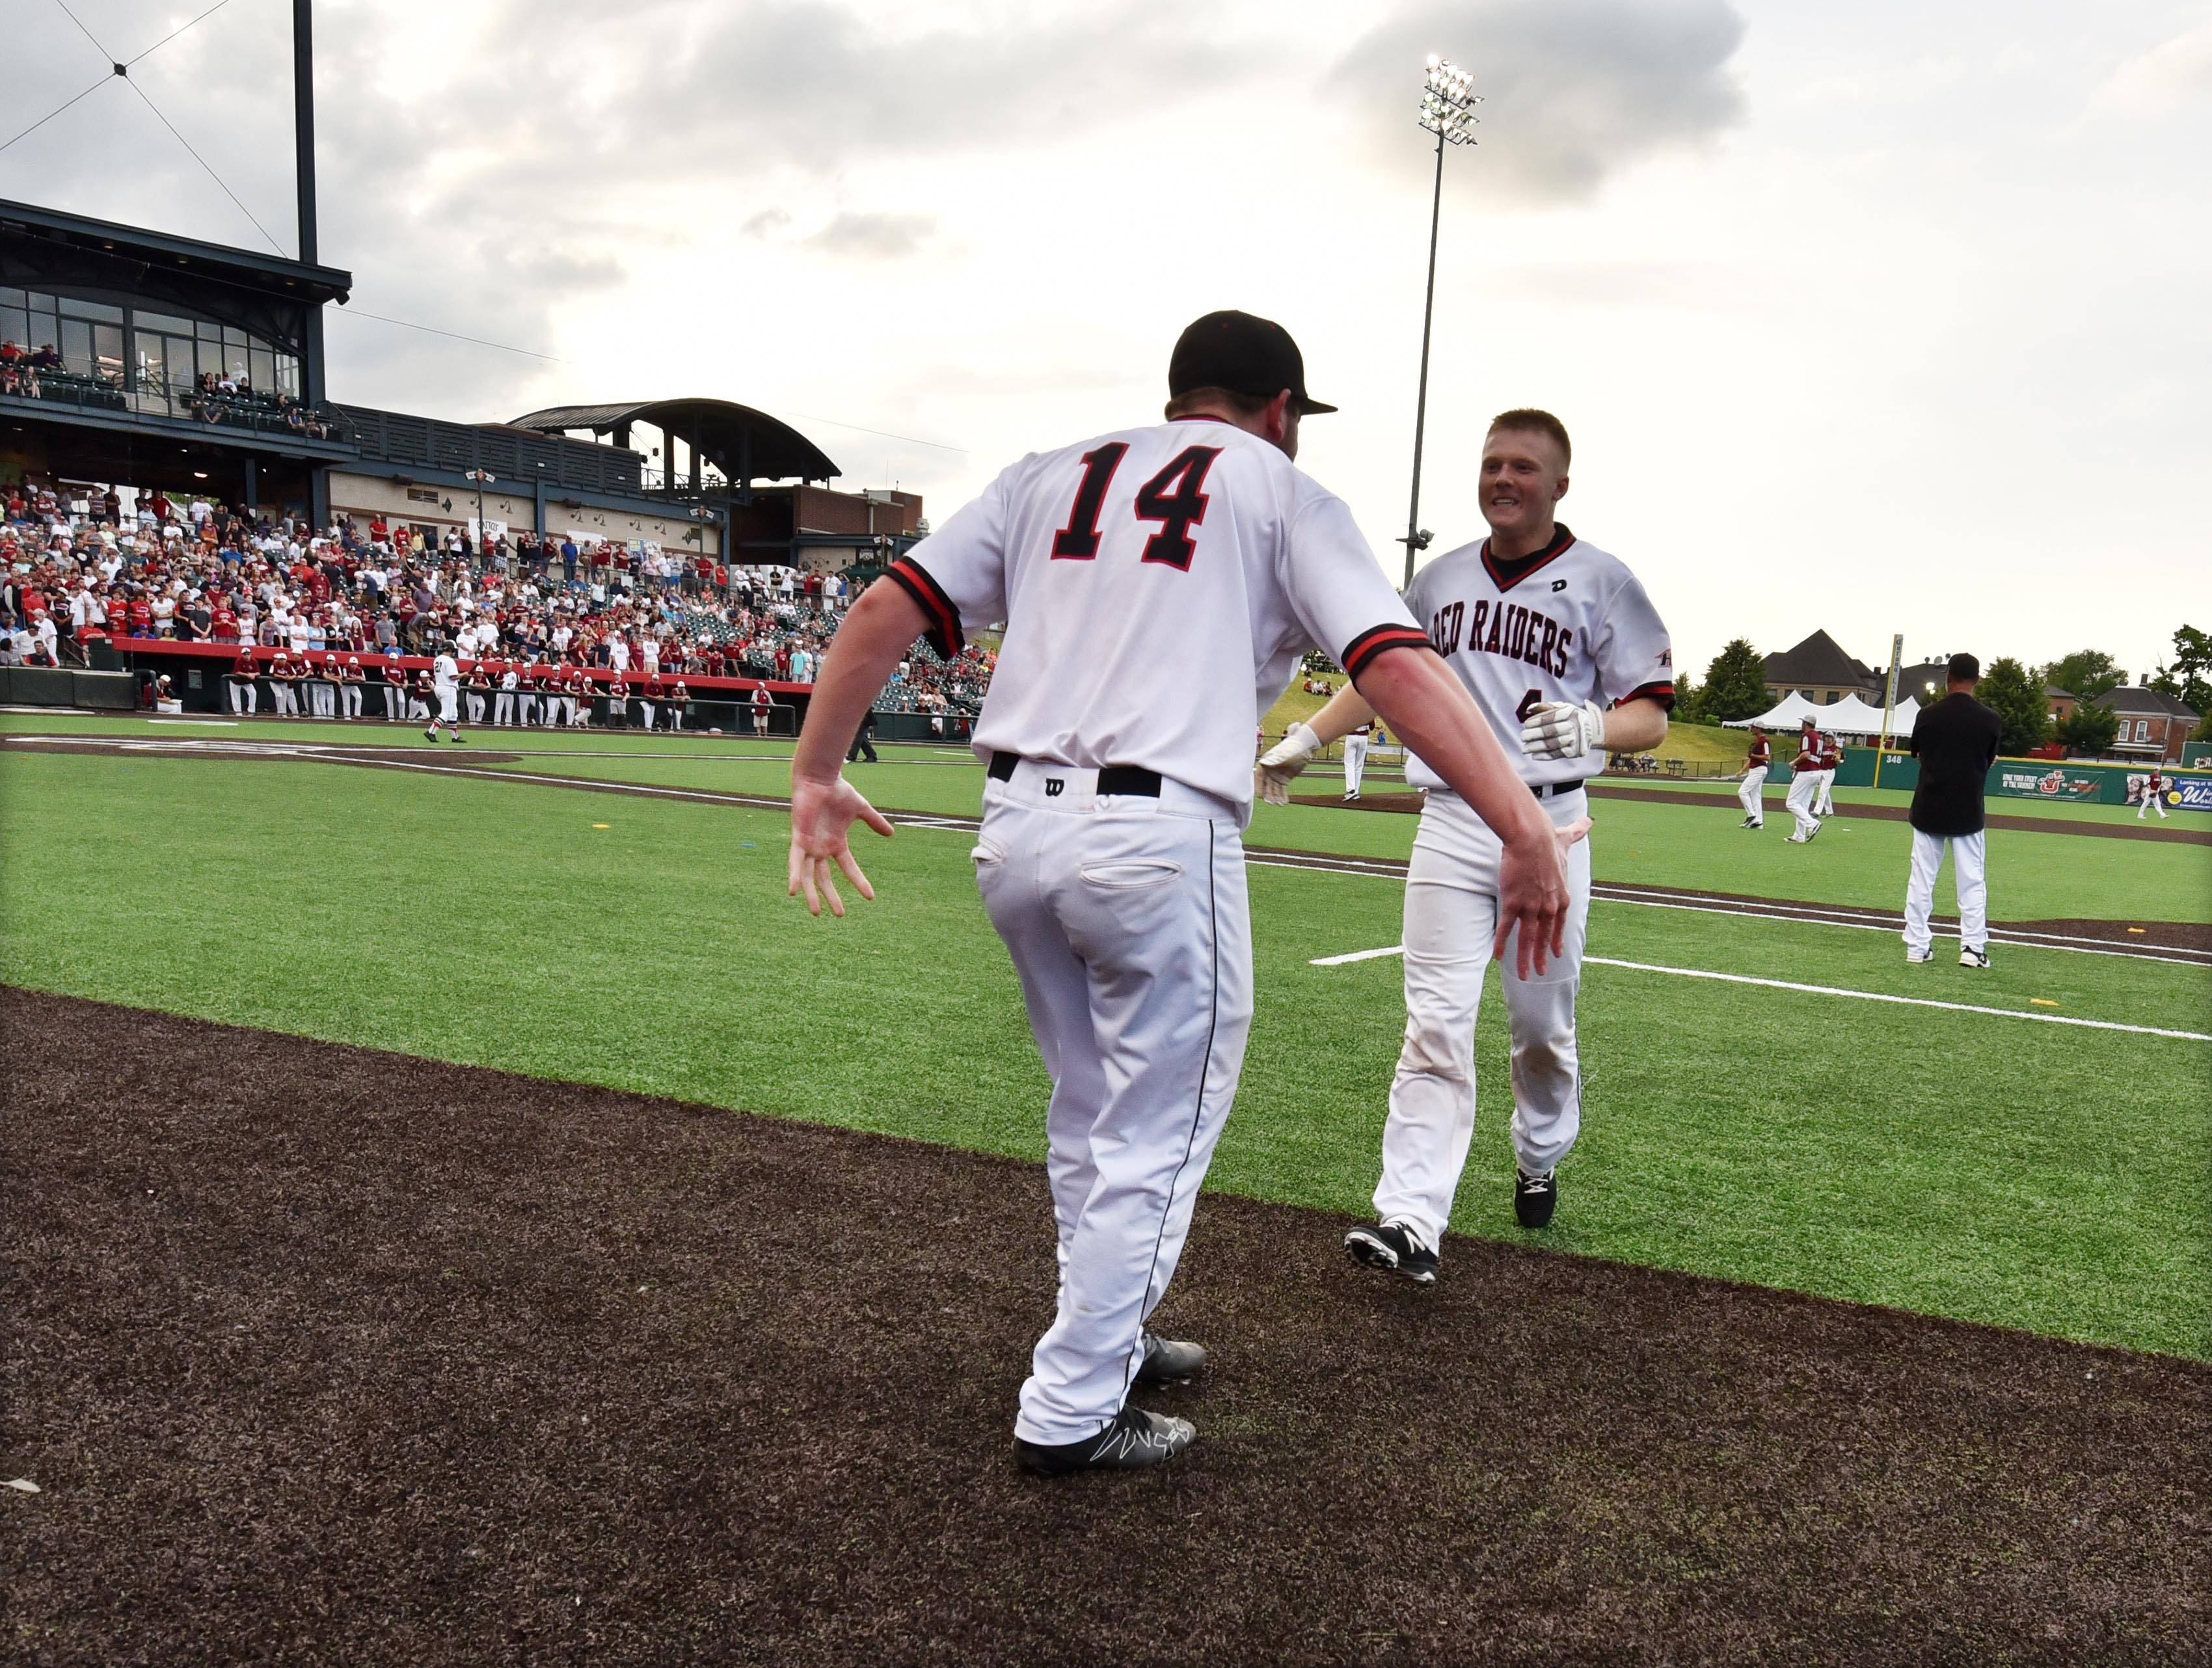 Huntley's Joe Rosenthal goes to greet Kamrin Hoffmann after his hit in the seventh inning against Plainfield North in the Class 4A baseball state championship game at Route 66 Stadium in Joliet on Saturday.